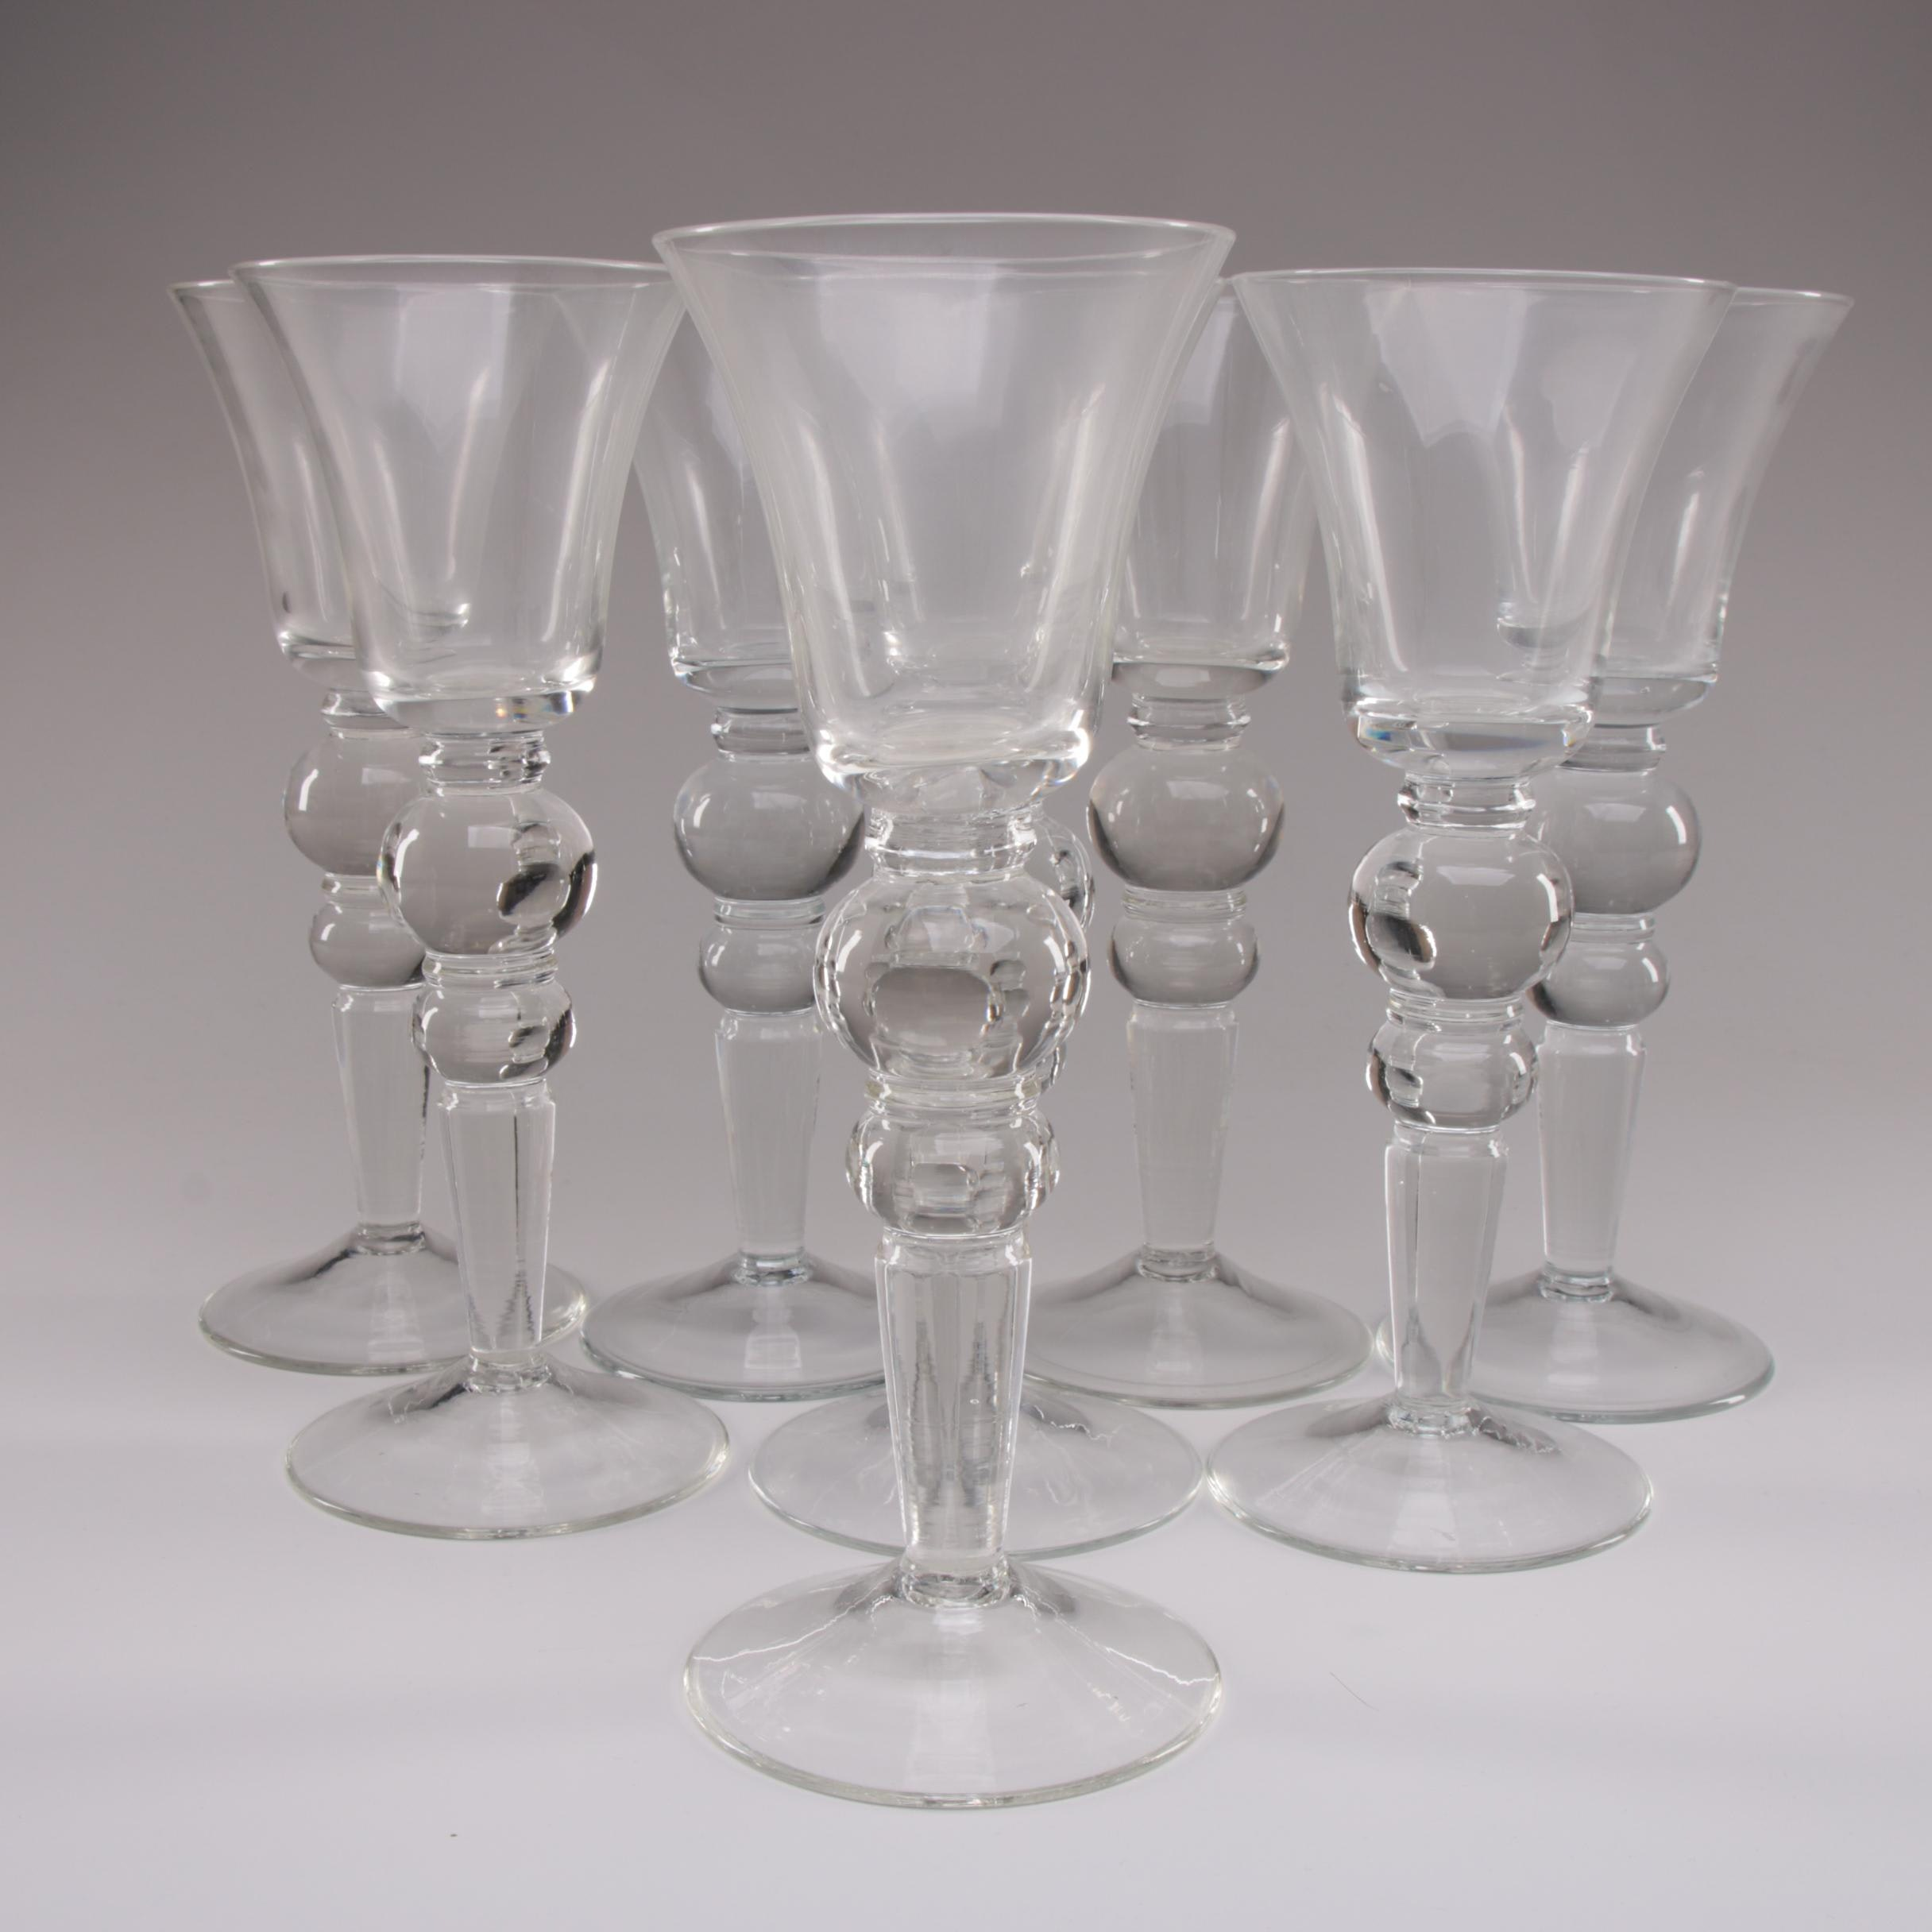 Contemporary Blown Glass Wine Glasses with Baluster Stems